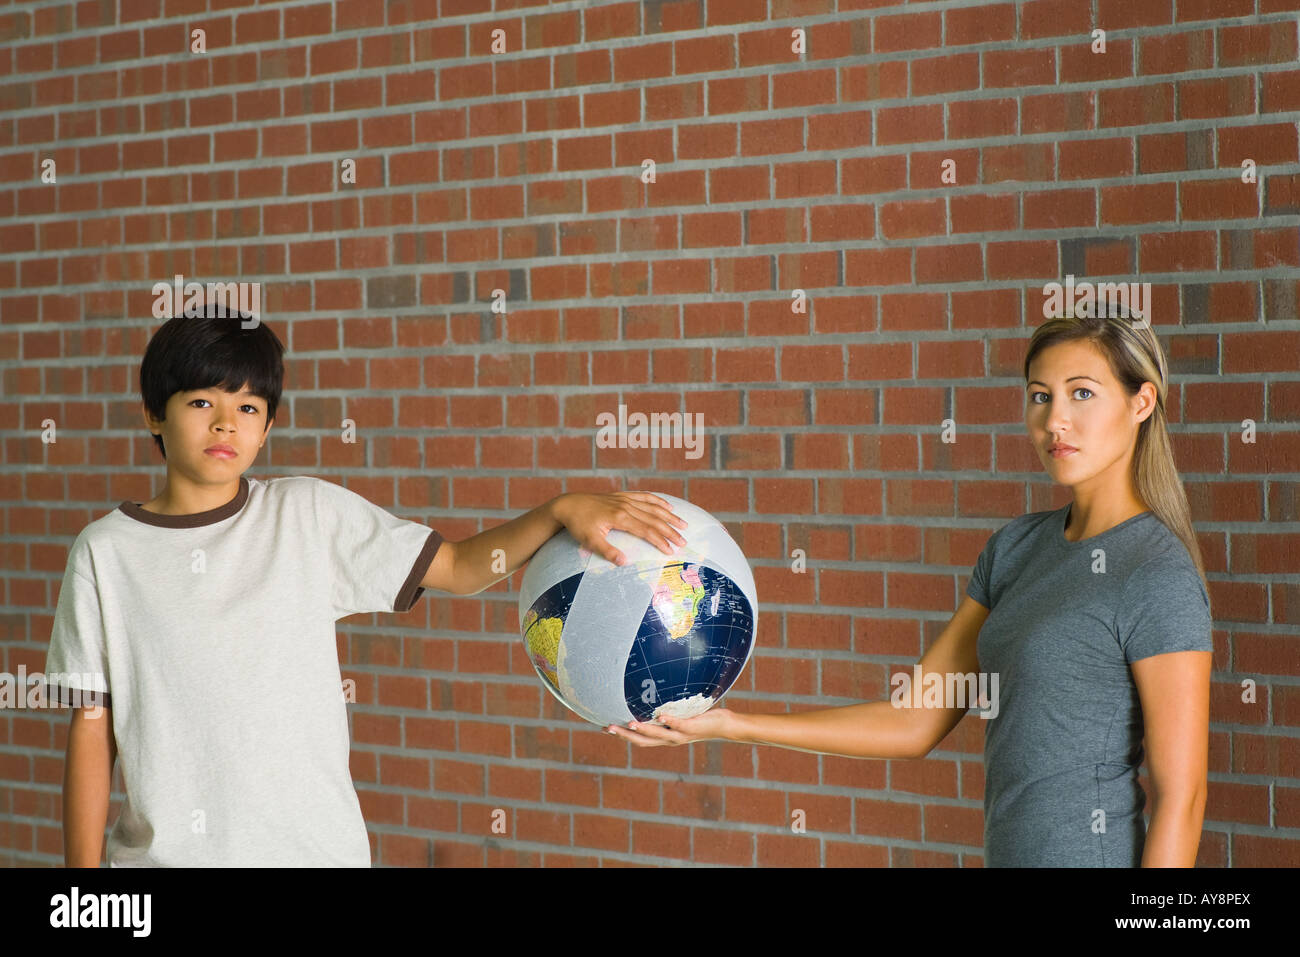 Woman and boy holding globe wrapped in bandages, both looking at camera - Stock Image